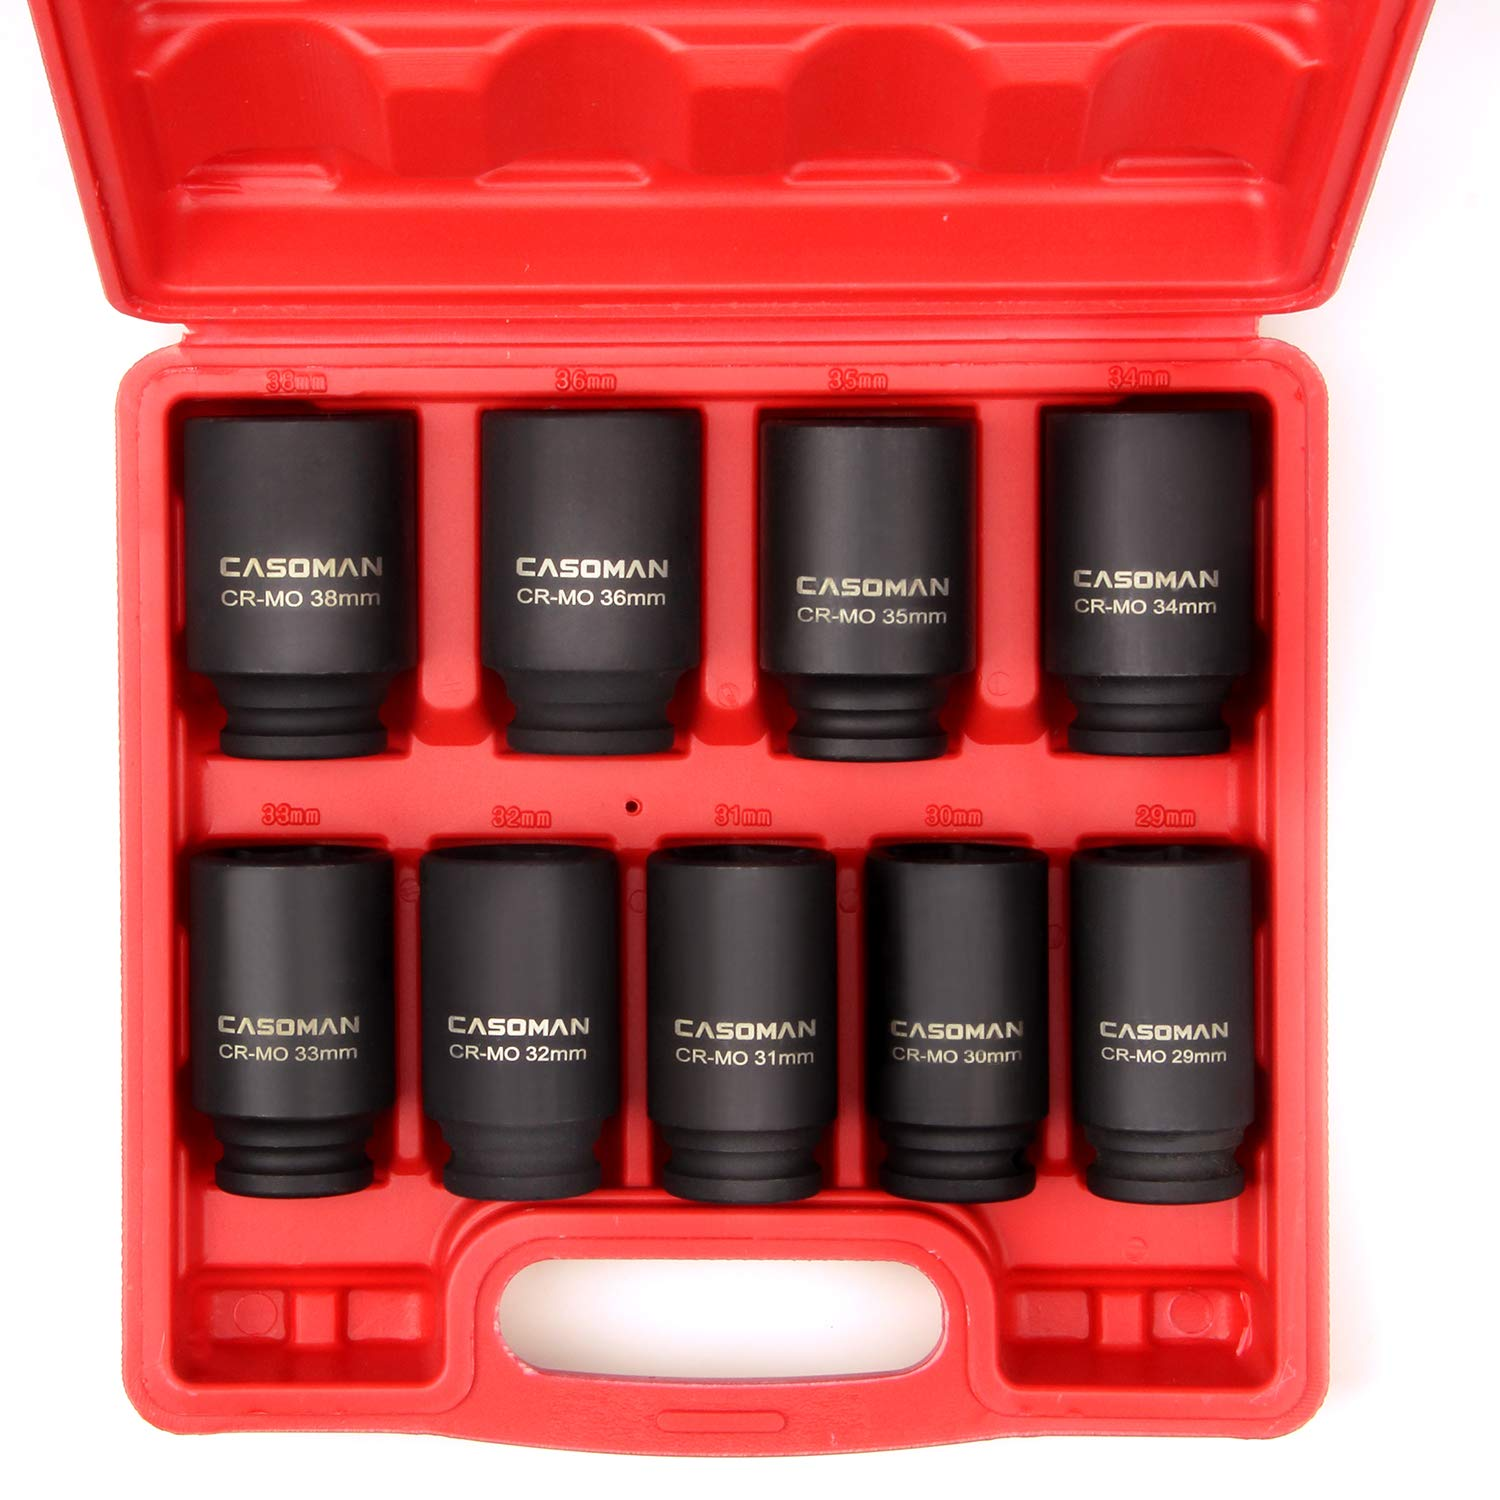 CASOMAN 1/2- Inch Drive Deep Spindle Axle Nut Impact Socket Set, 6 Point, CR-MO, Metric, 29mm-38mm, 9-Piece 1/2'' Dr. Deep Impact Socket Set by CASOMAN